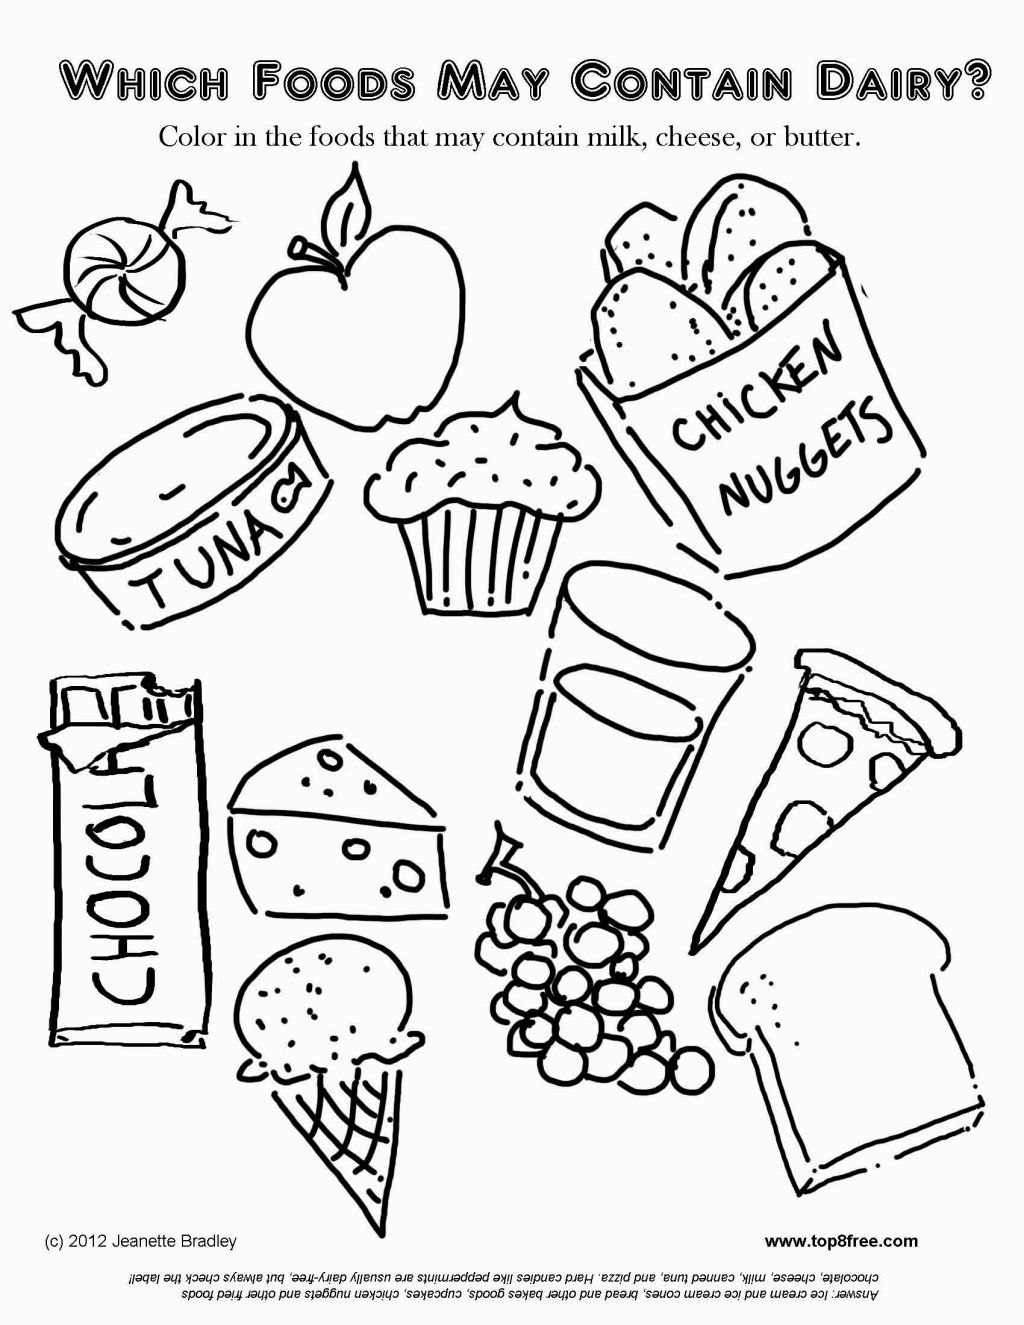 Food Group Coloring Pages Food Coloring Pages Printable Coloring Pages Coloring Pages For Kids